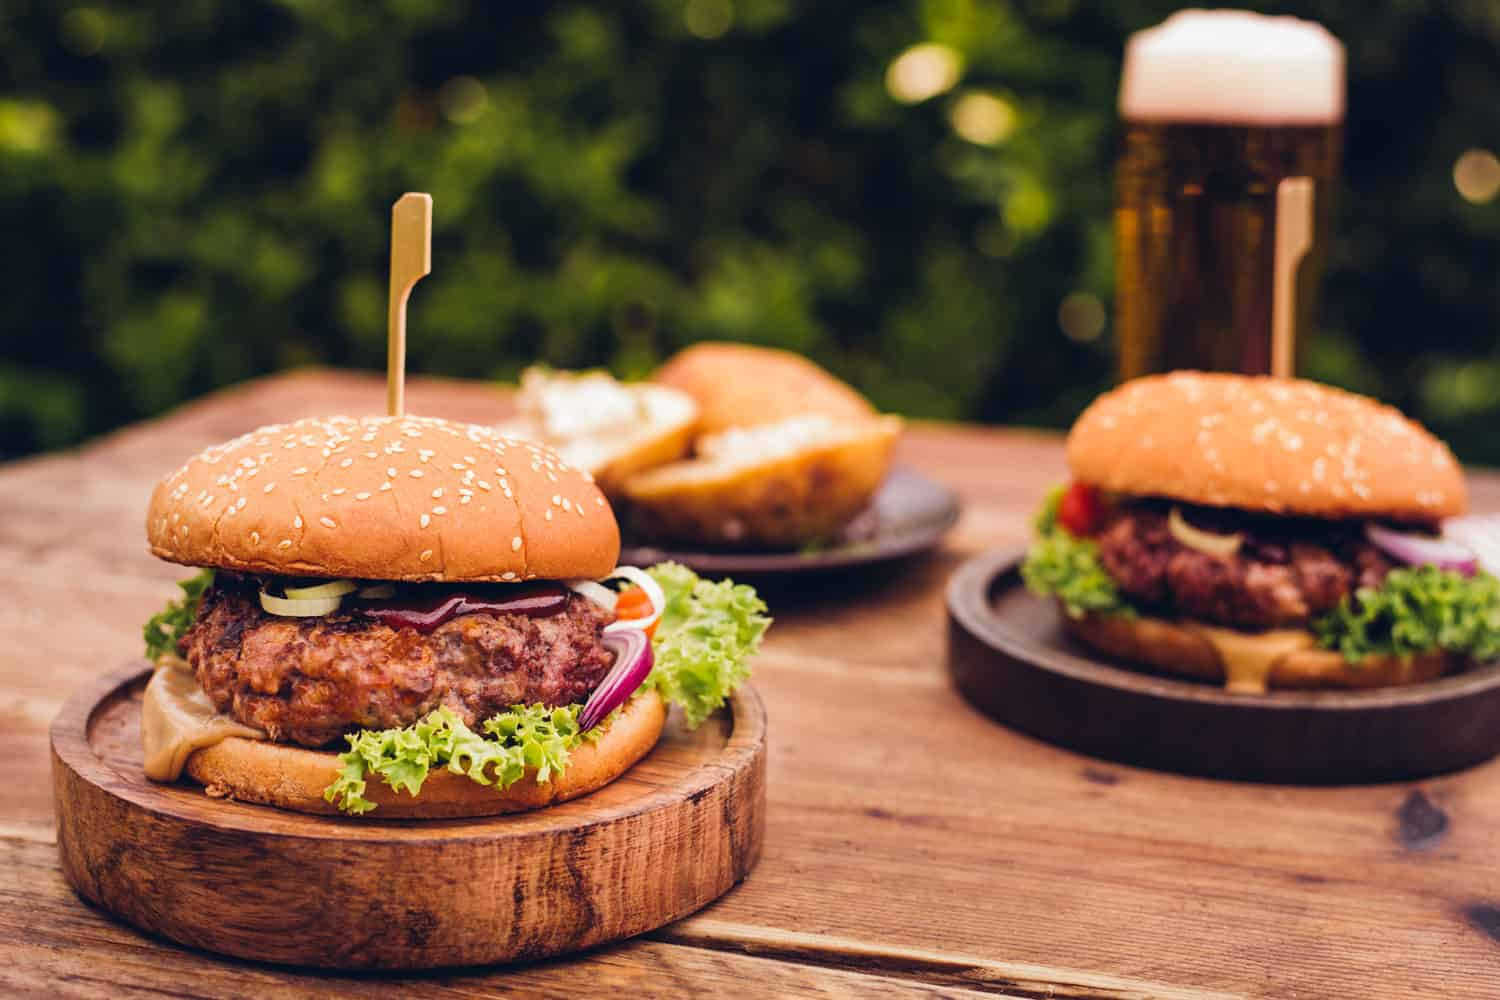 Two delicious burgers with ranch dressing, lettuce, and cheese on a small wooden plate, How To Season Hamburgers For The Grill [9 Seasonings To Try Out]